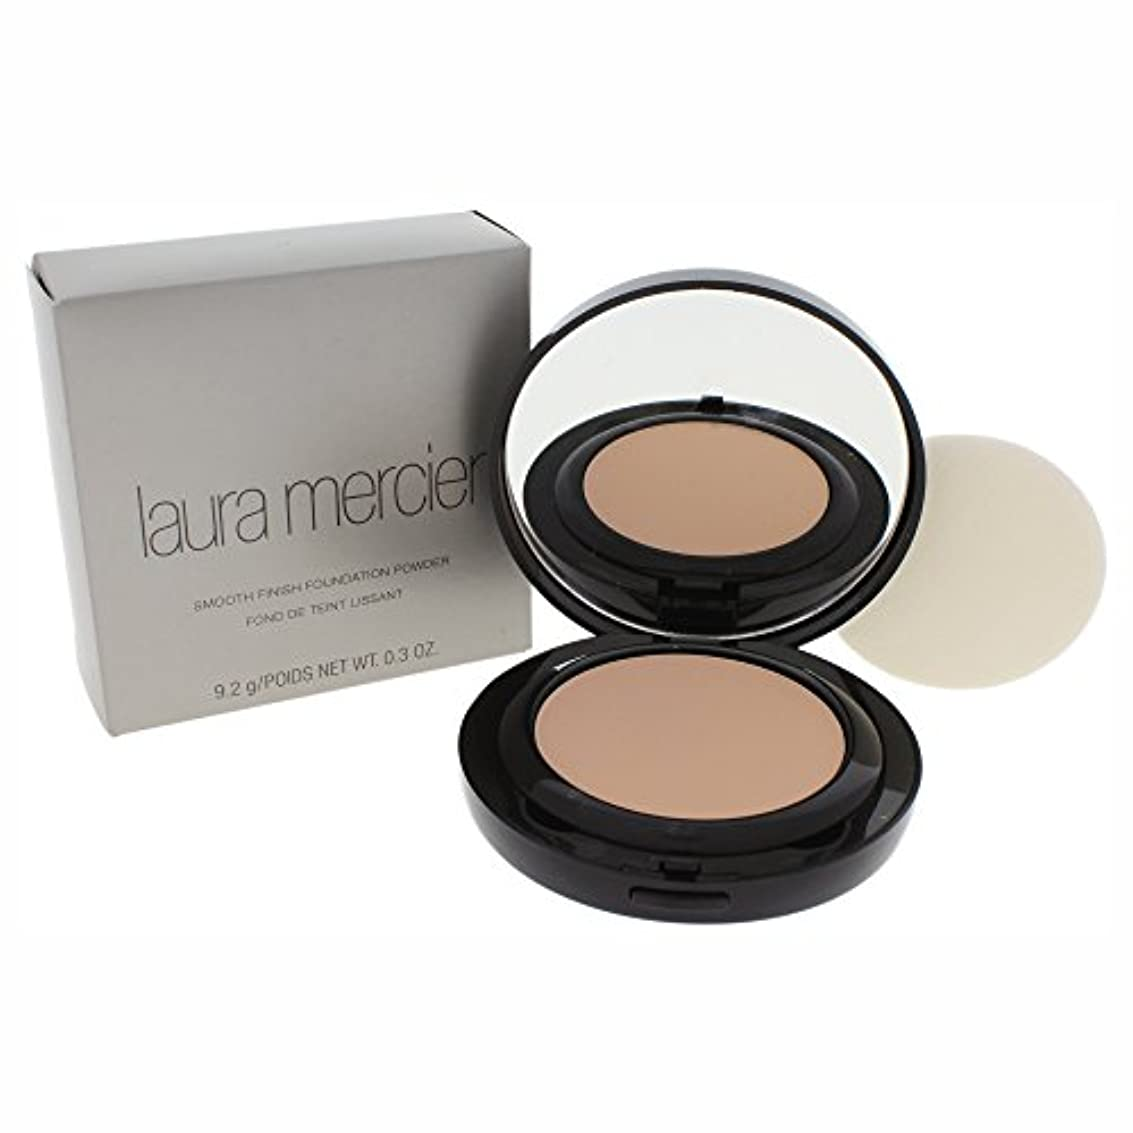 Smooth Finish Foundation Powder - 03 (Light Beige w/ Neutral & Slightly Pink Undertone)